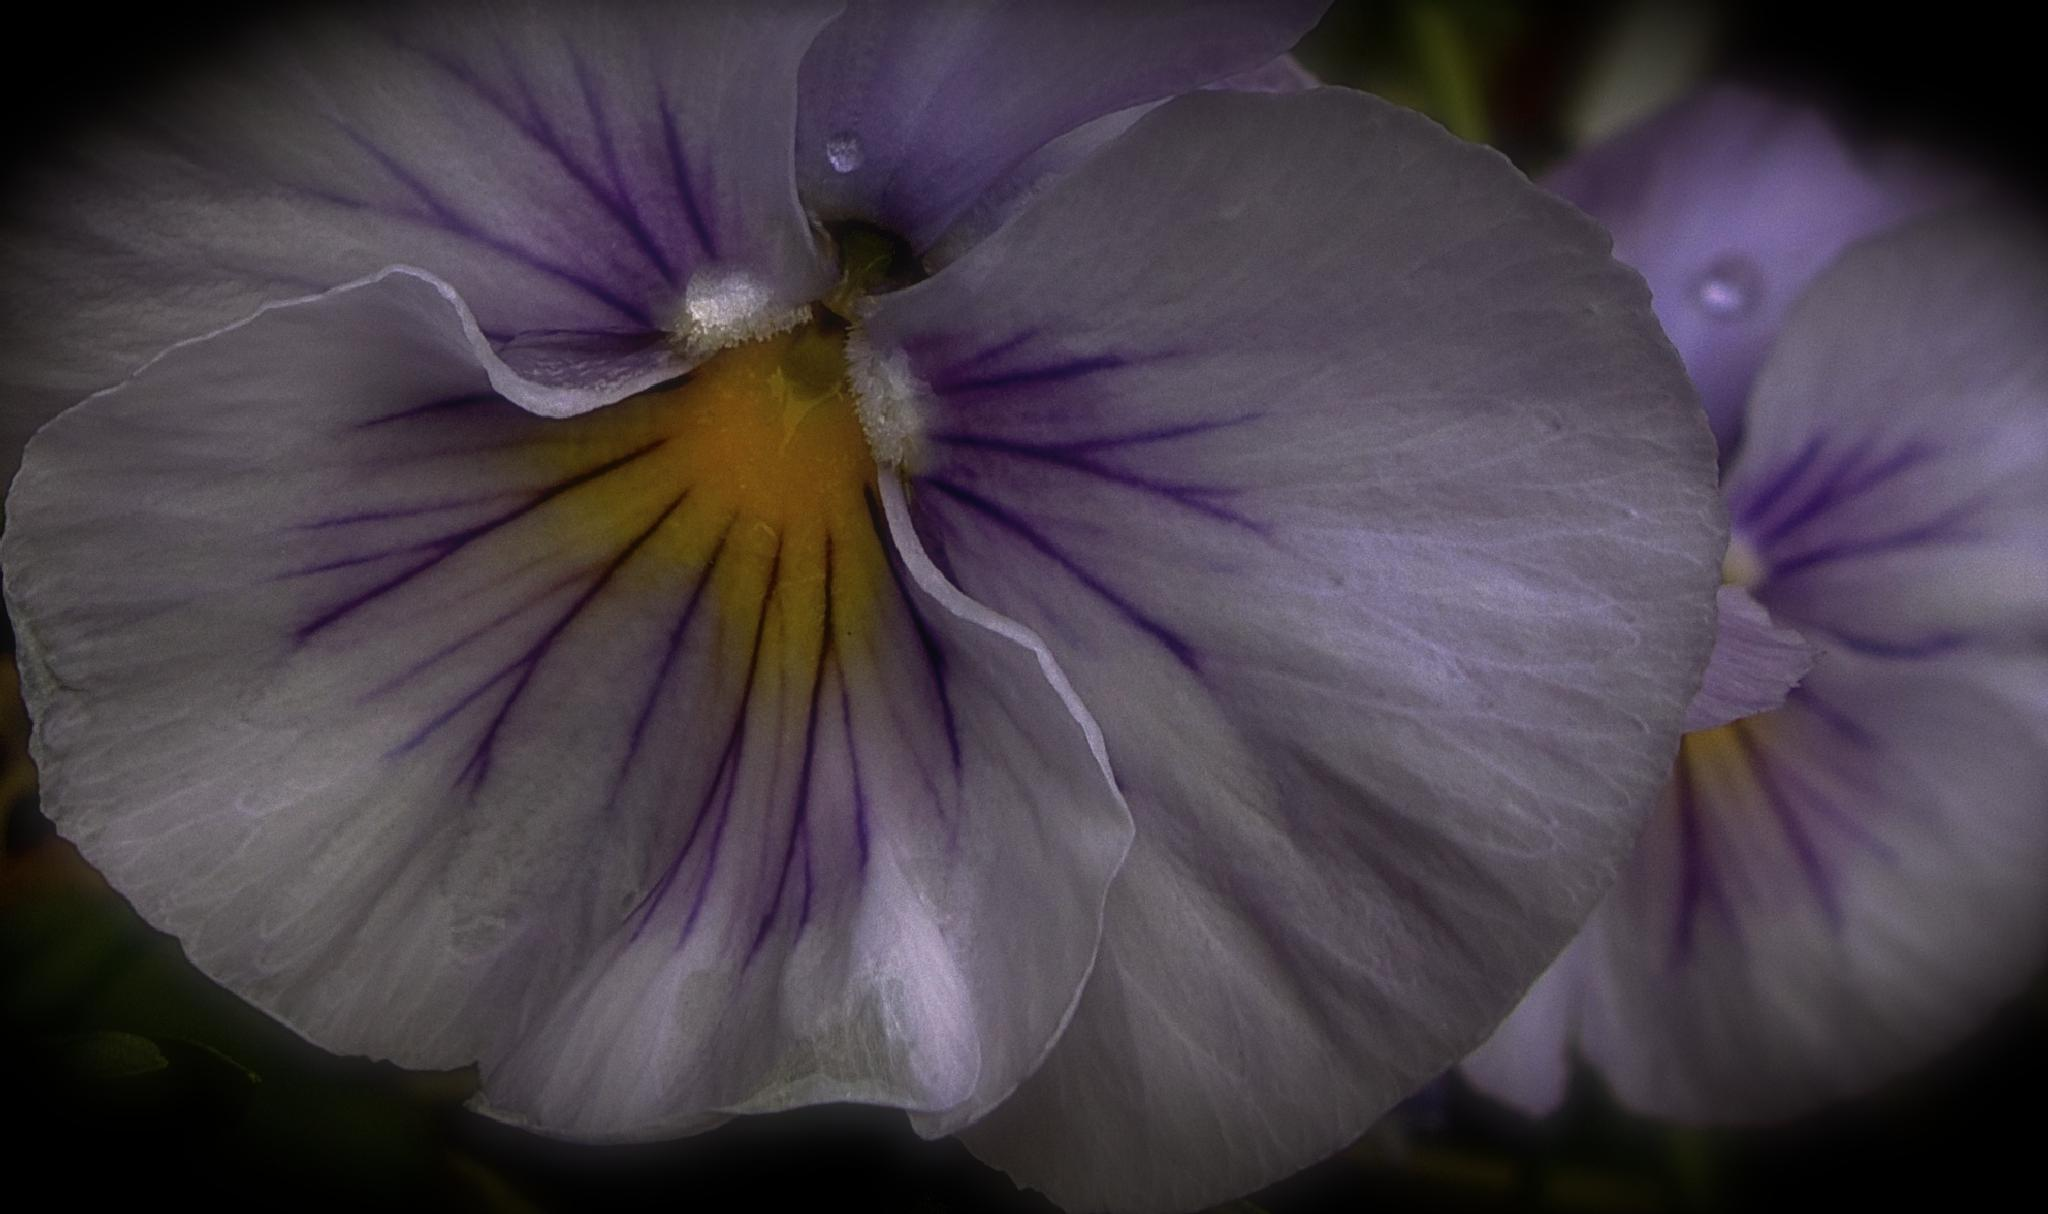 Flowers and drops. by Henning N Gaare